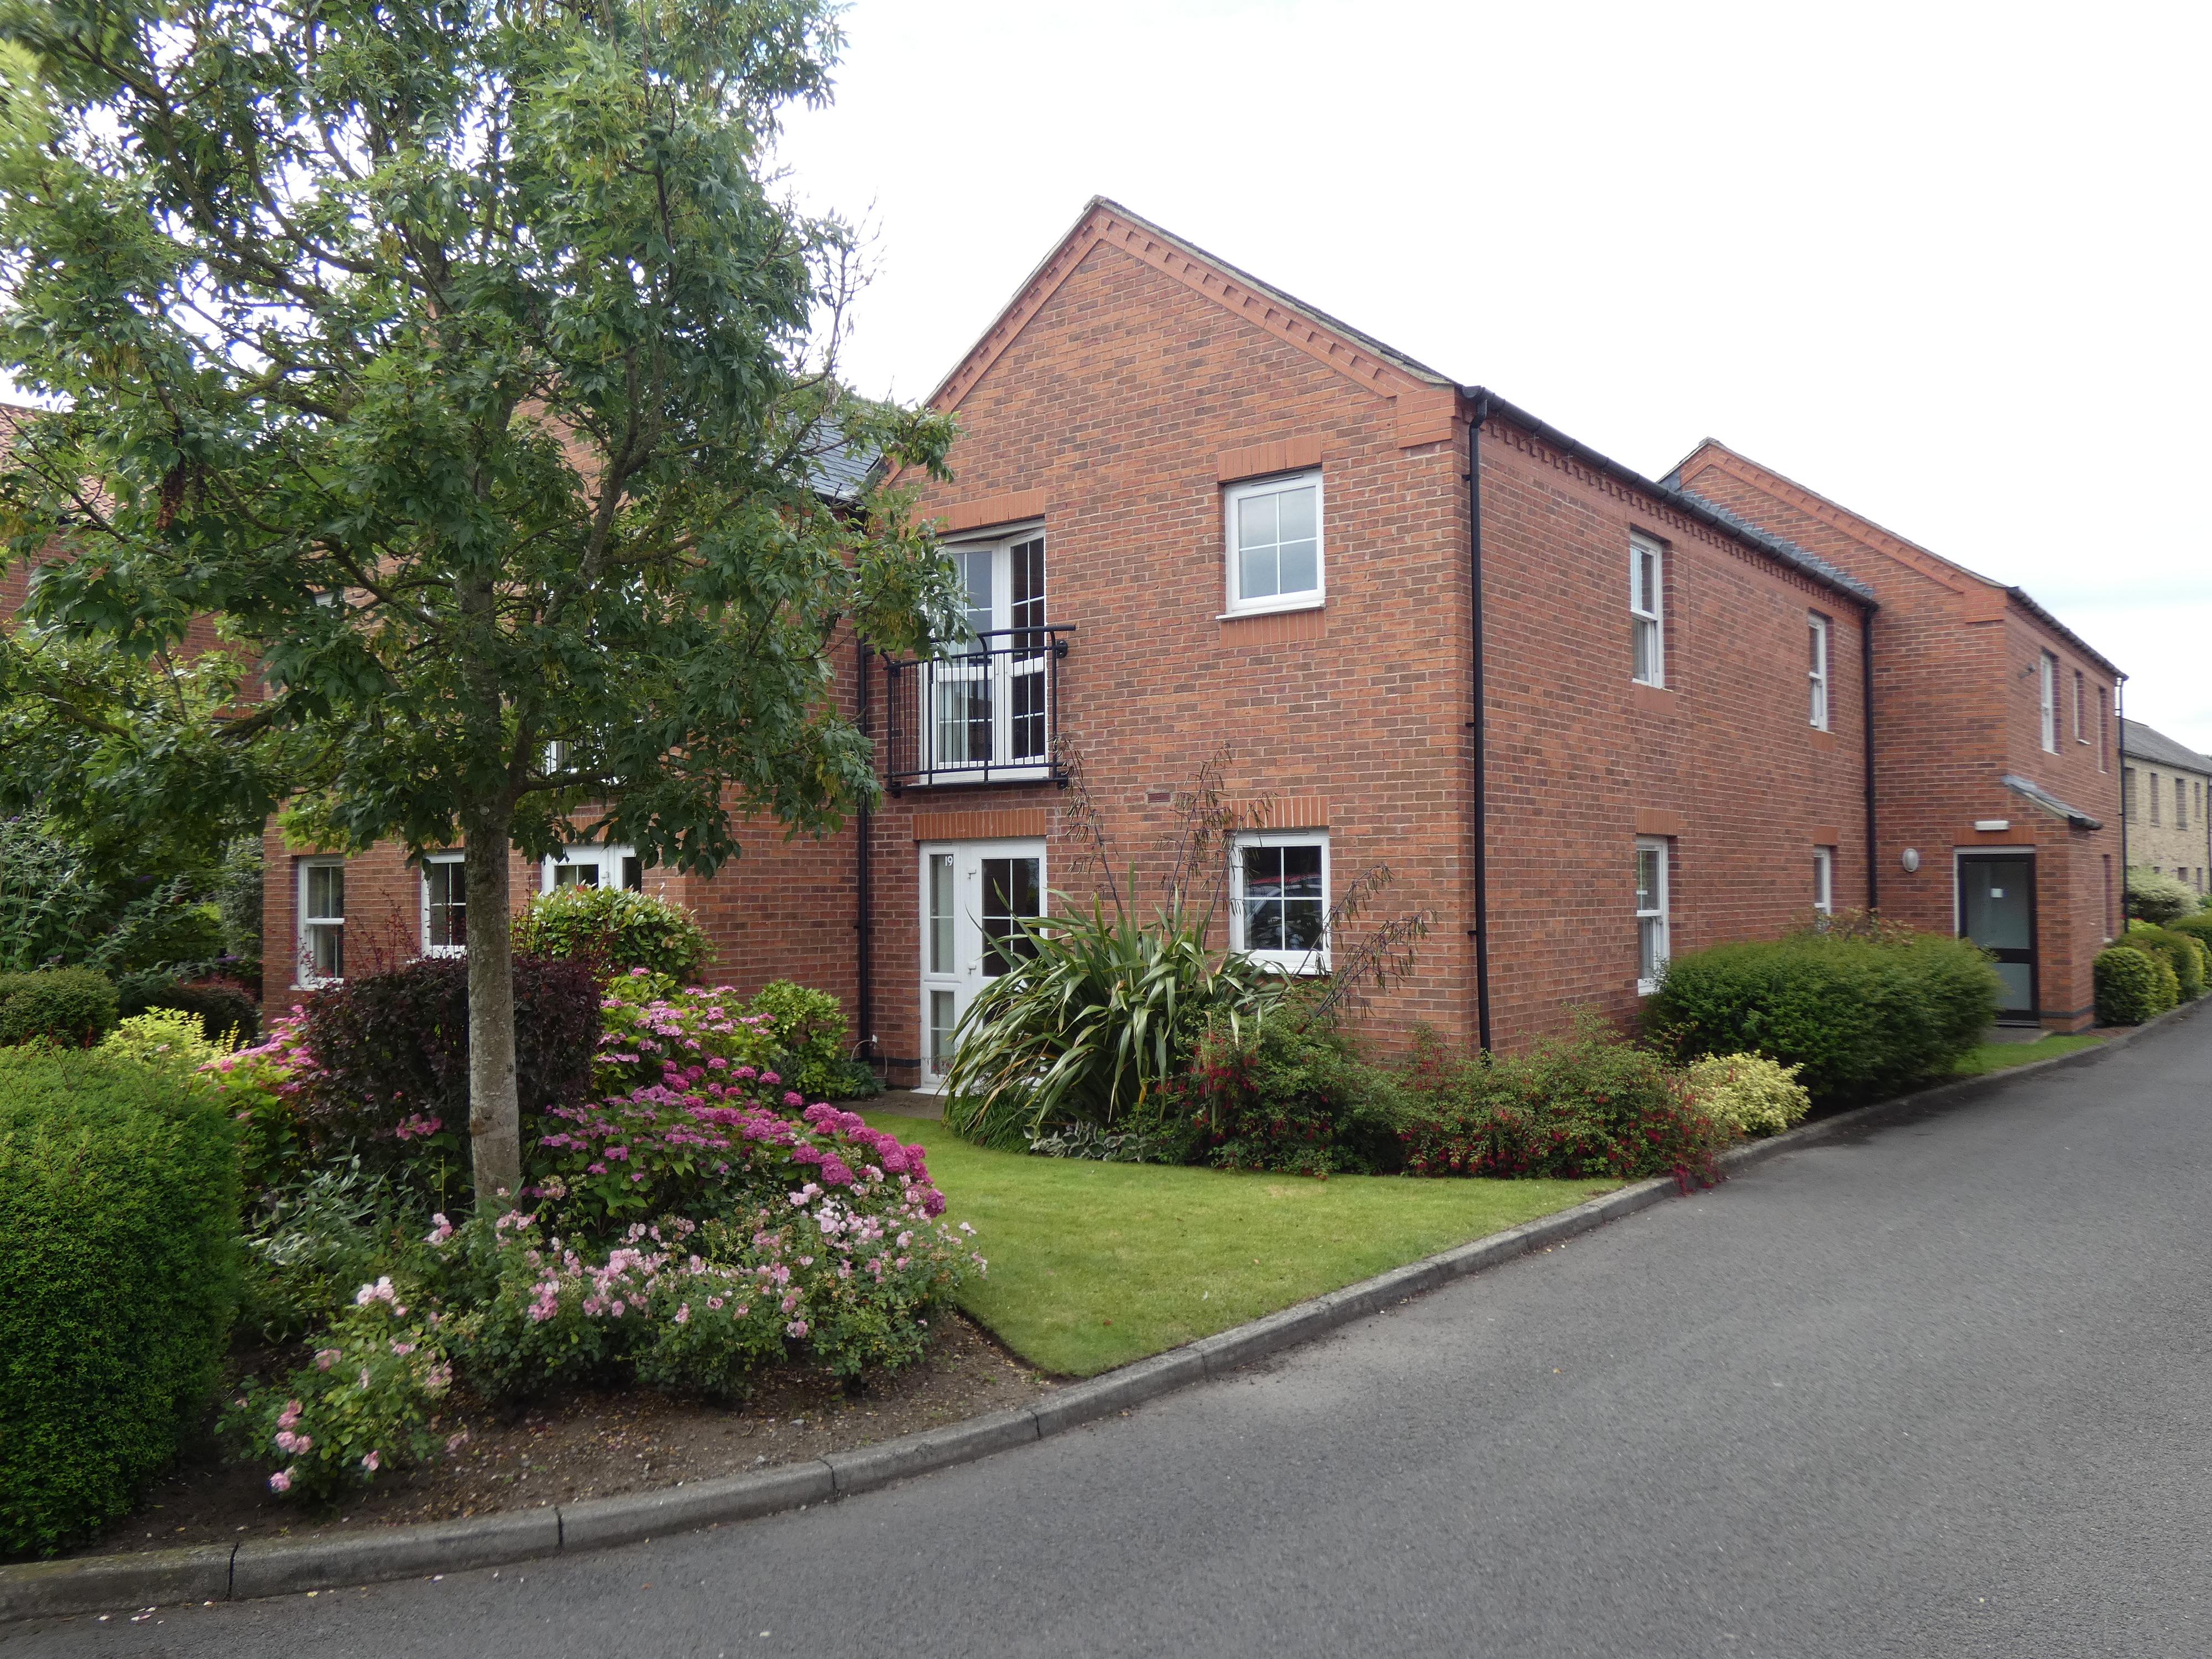 19 Greendale Court, Bedale